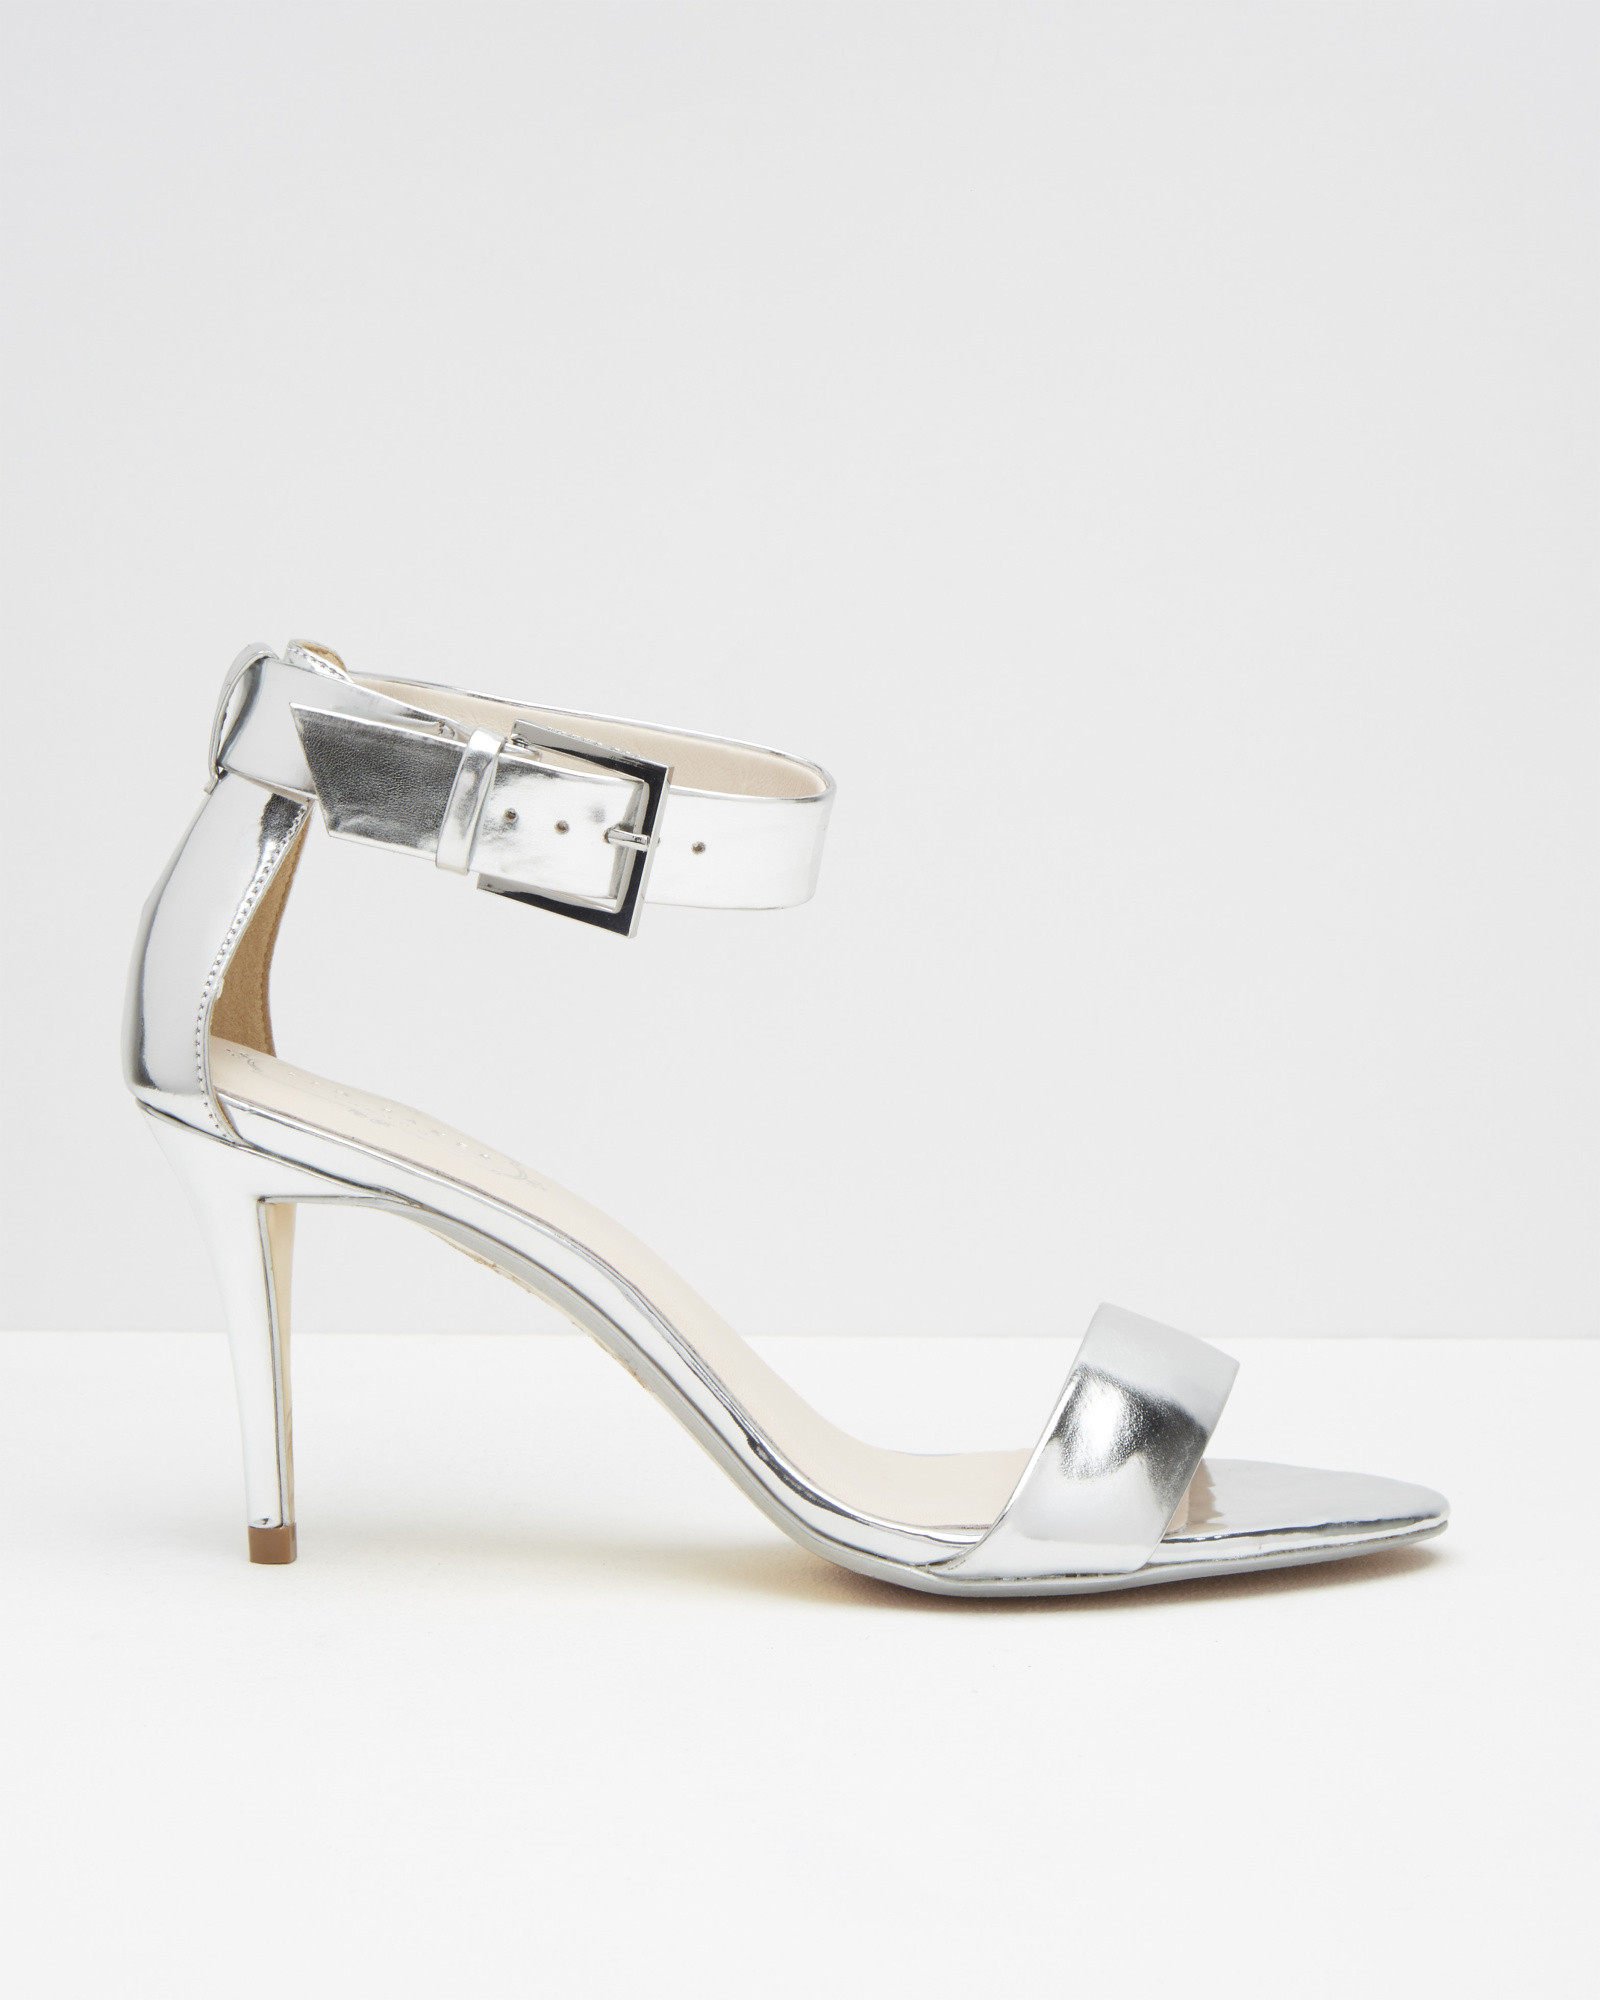 4a0794d21757 Lyst - Ted Baker Ankle Strap Leather Sandals in Metallic